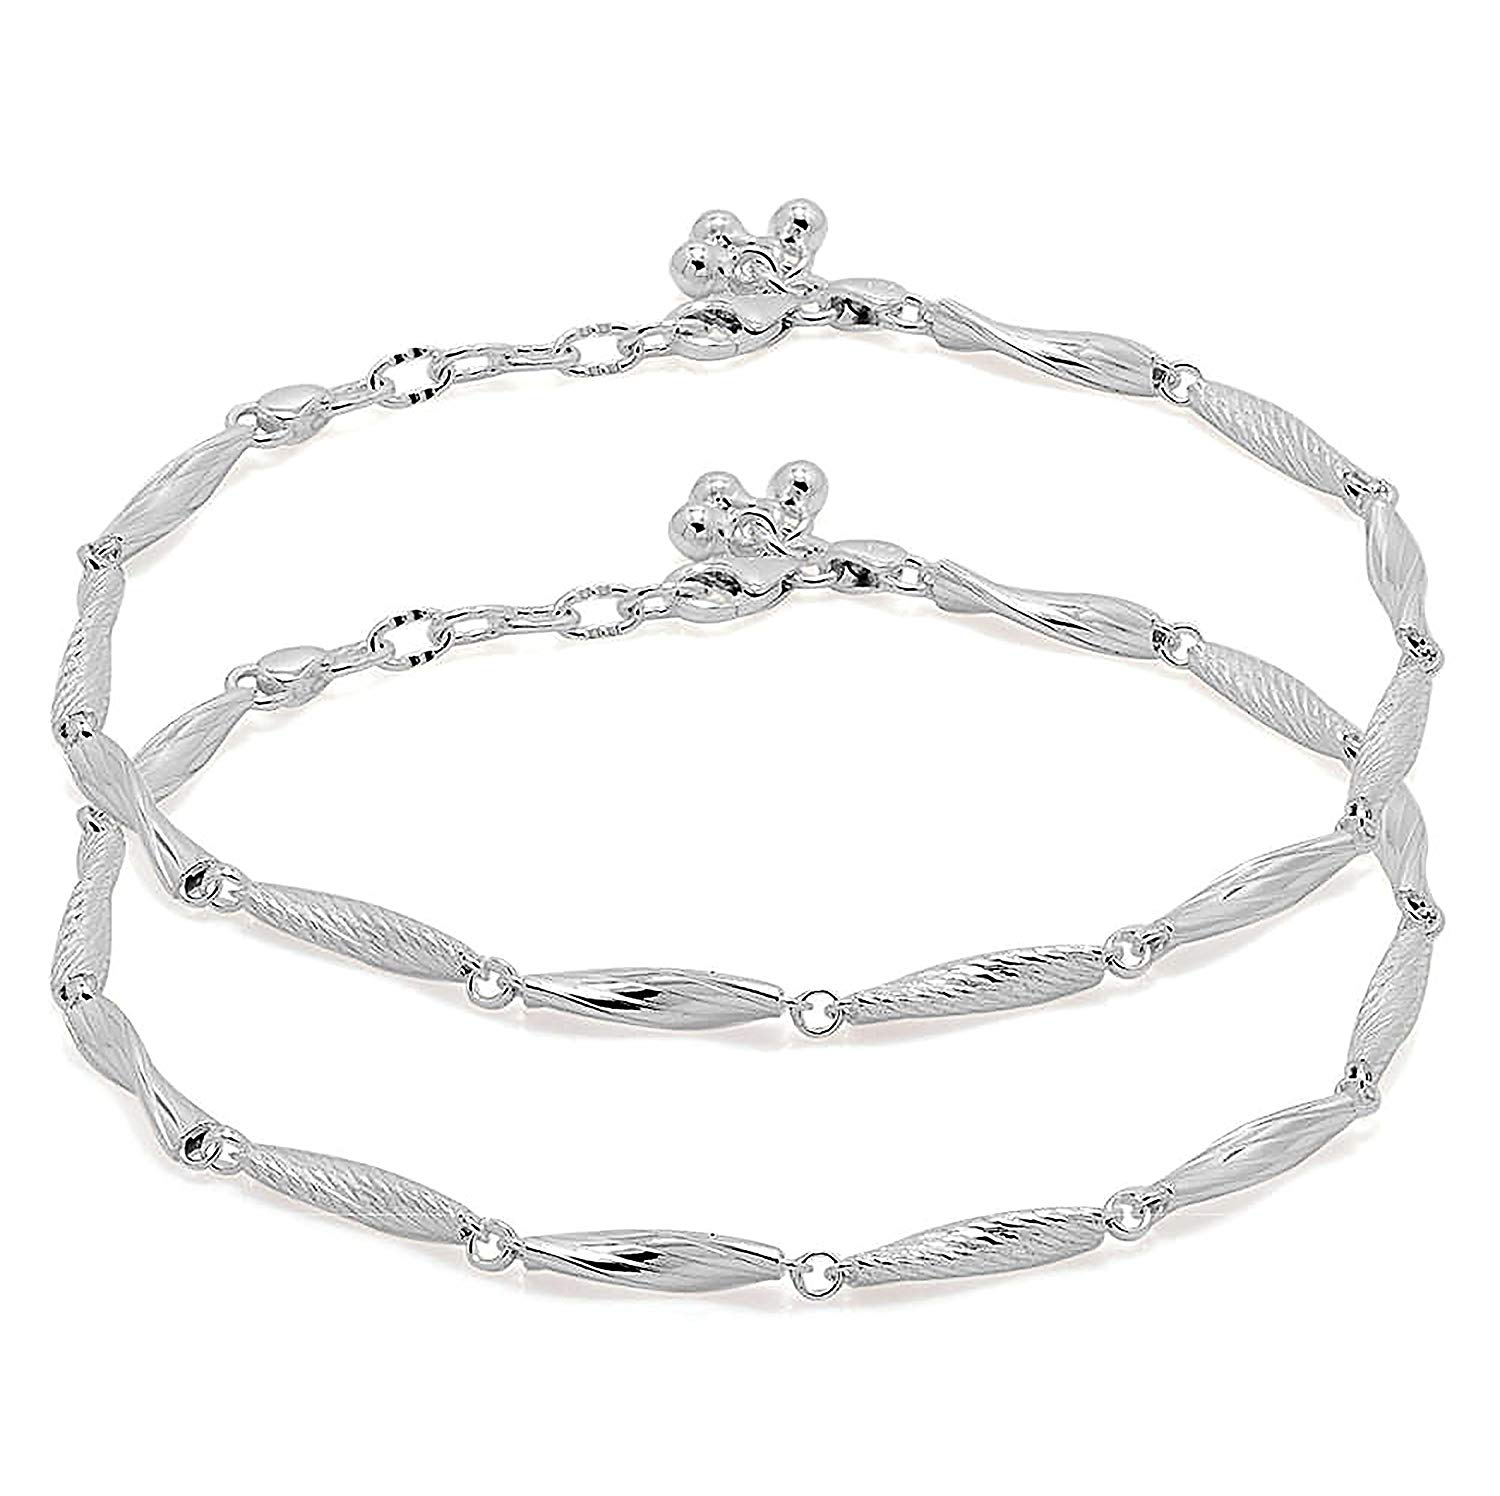 D&D Crafts Sterling Silver Anklets with Texture Design For Girls, Women